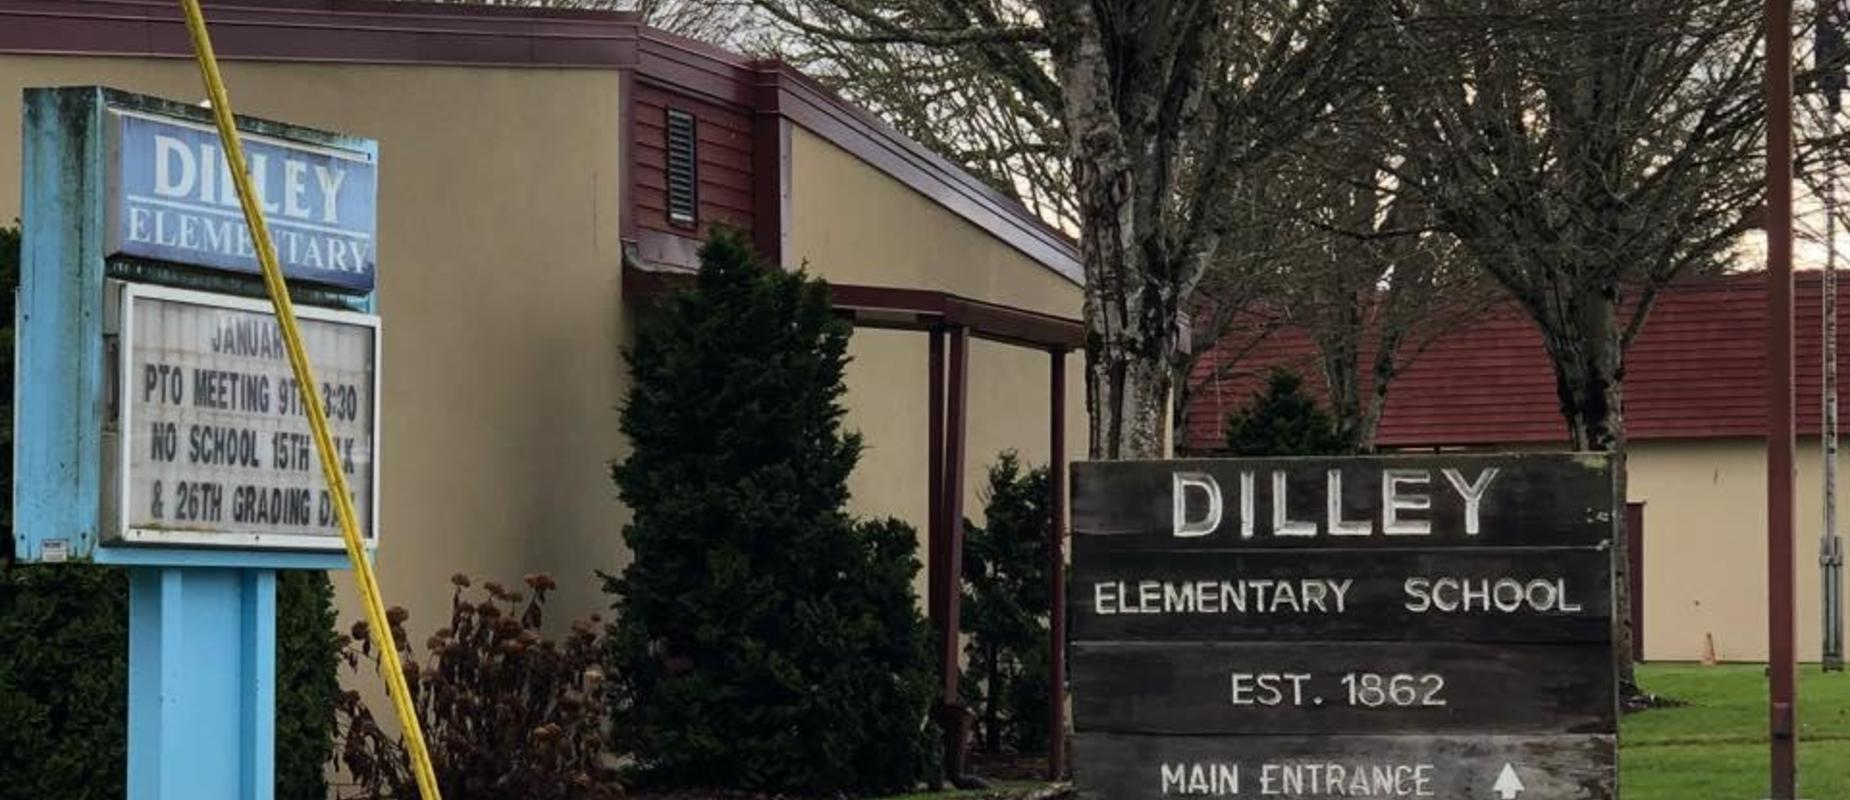 Dilley Elementary welcome sign in front of school